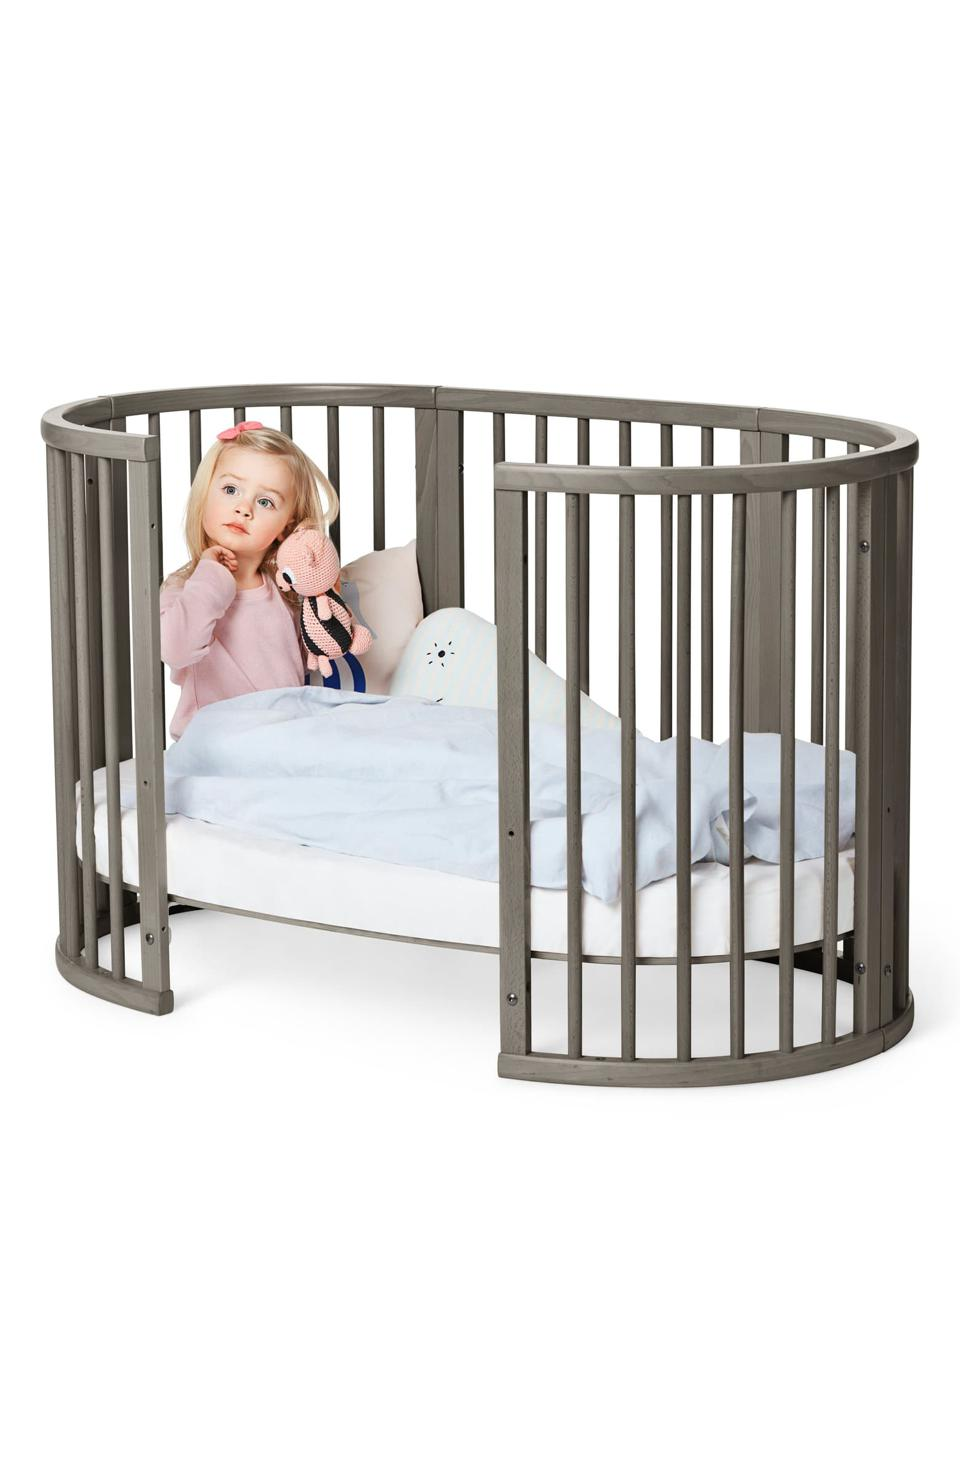 a crib with a child in it